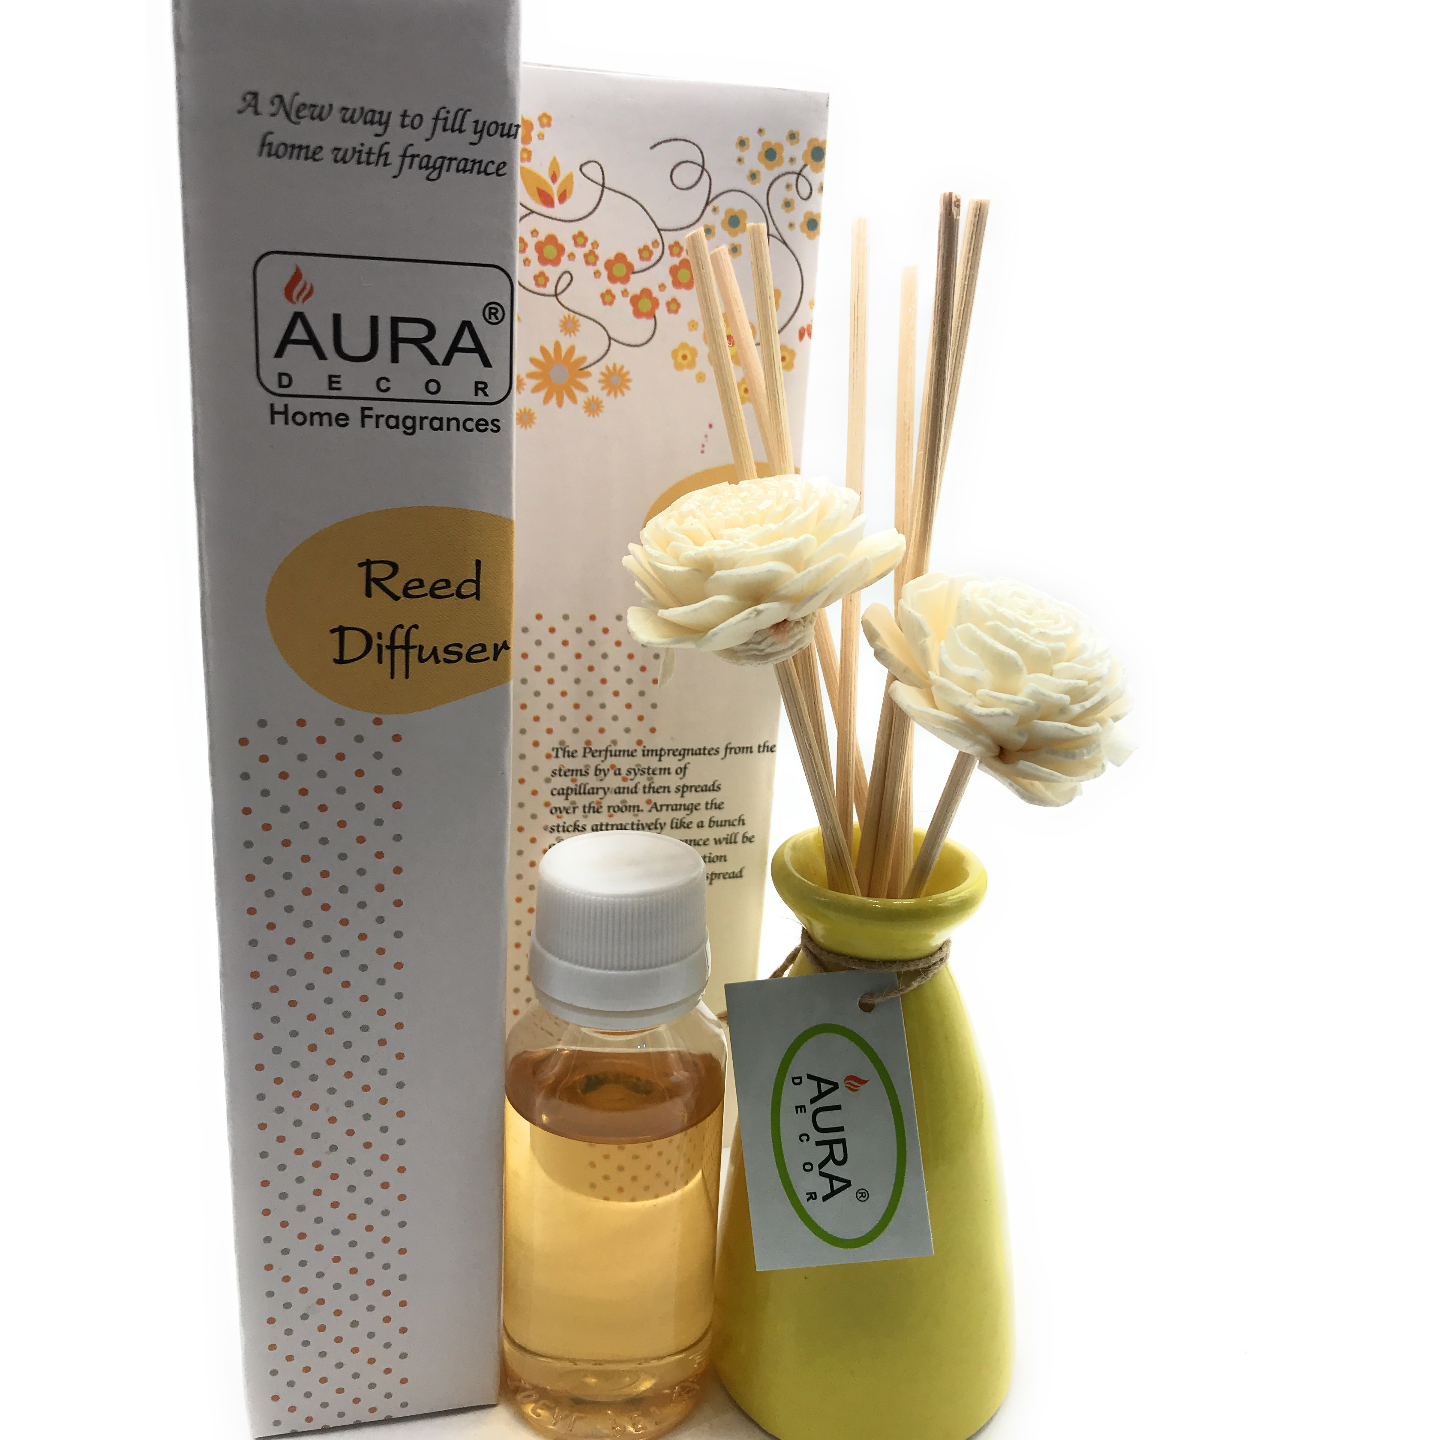 AuraDecor Reed Diffuser Gift pack with Diffuser Pot & 10 Reed Sticks & 2 Flower Reeds 50ml Reed Oil ( Citrus )